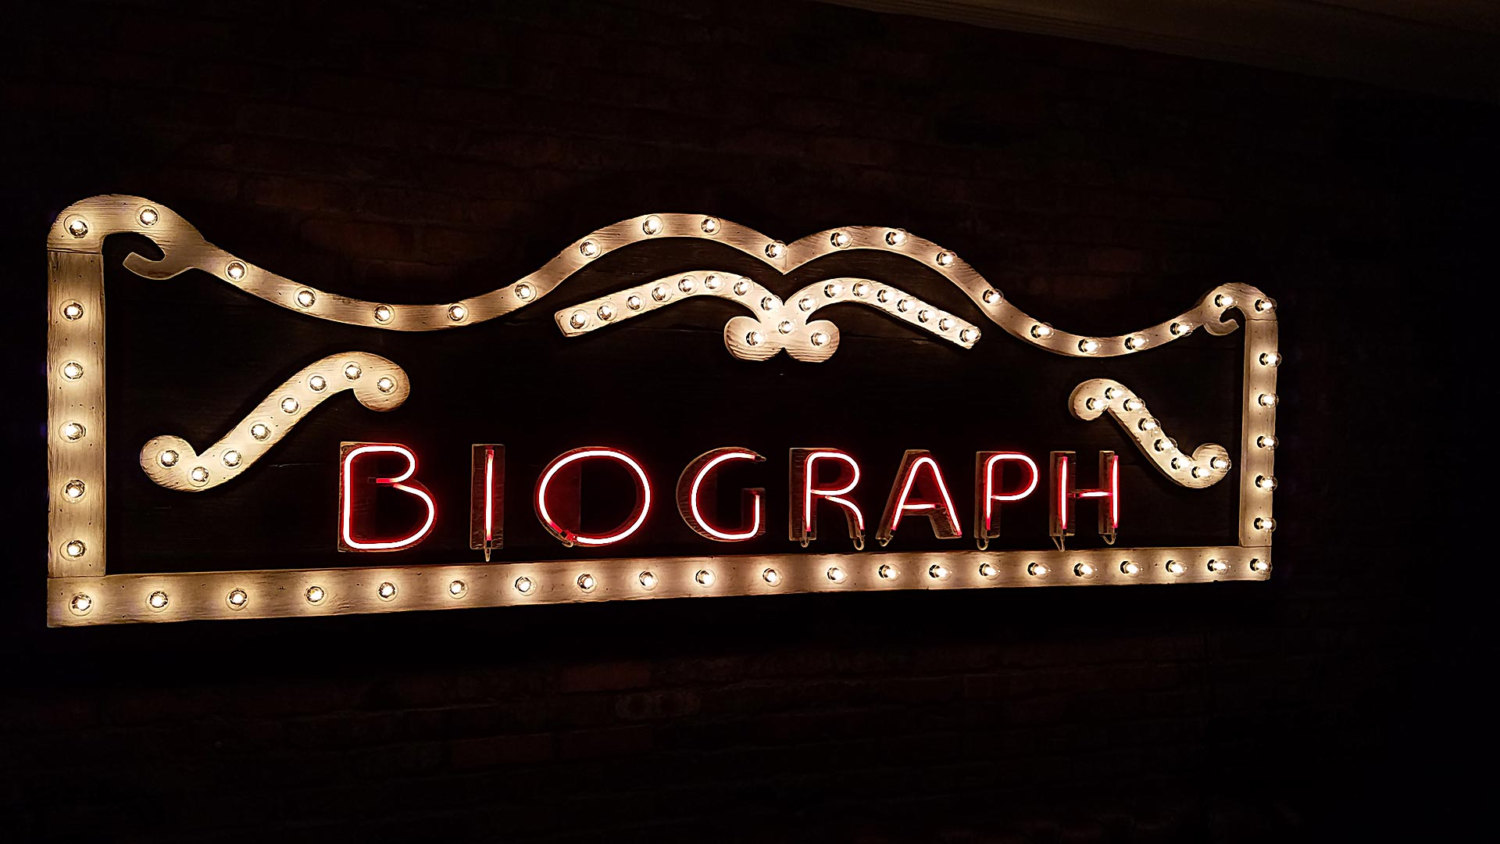 Light Up Signs Custom: Custom Light Up Sign For Your Home Or Store, Distressed